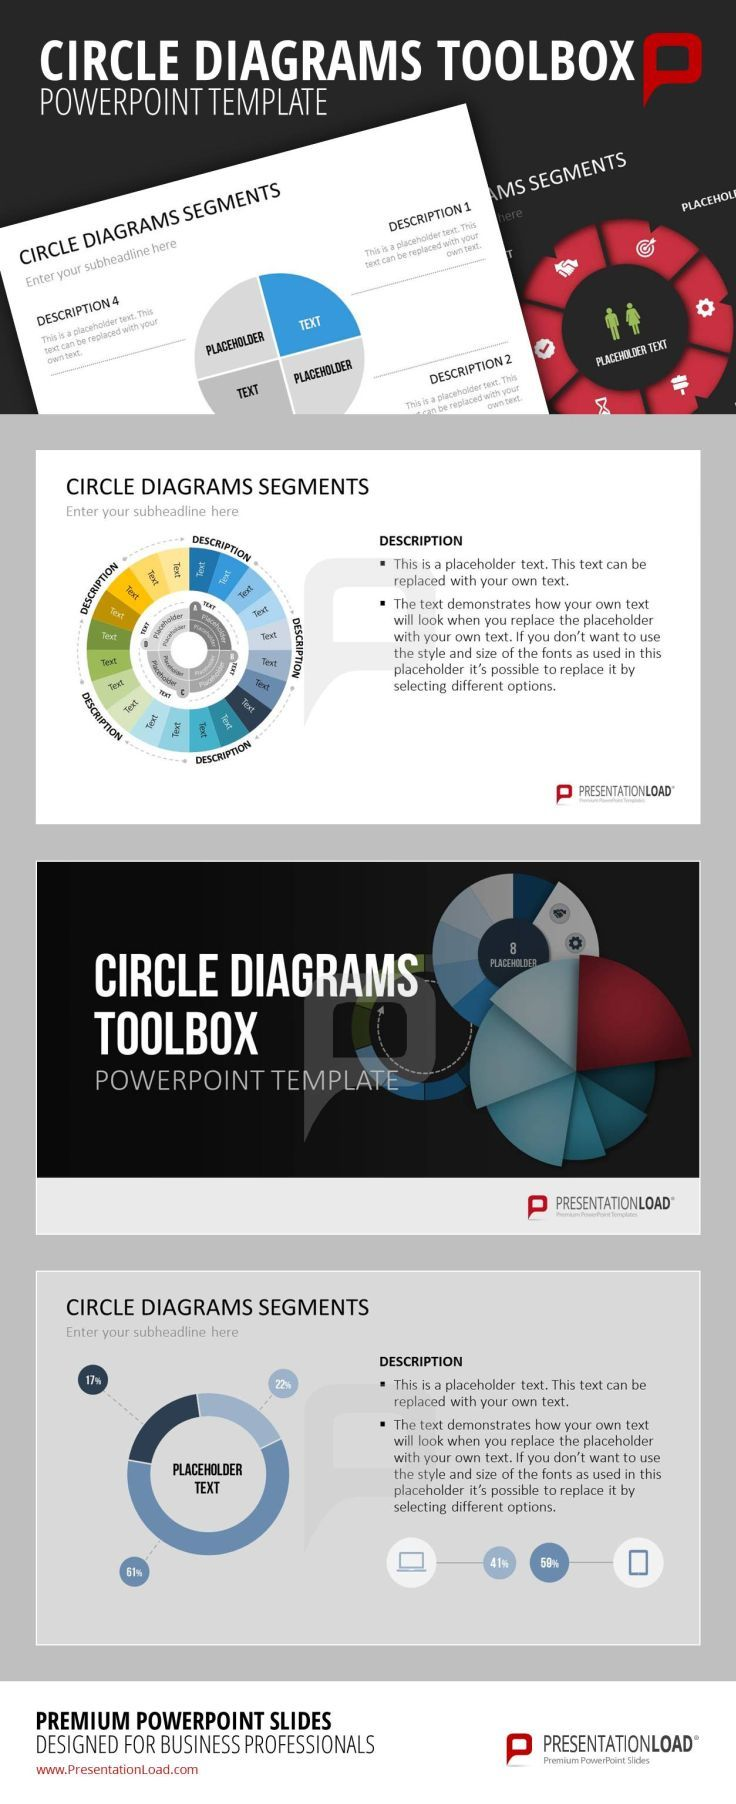 Circle diagram toolbox this diagram toolbox for powerpoint comes circle diagram toolbox this diagram toolbox for powerpoint comes with circle ring and radial diagrams in different variants and display formats ccuart Gallery